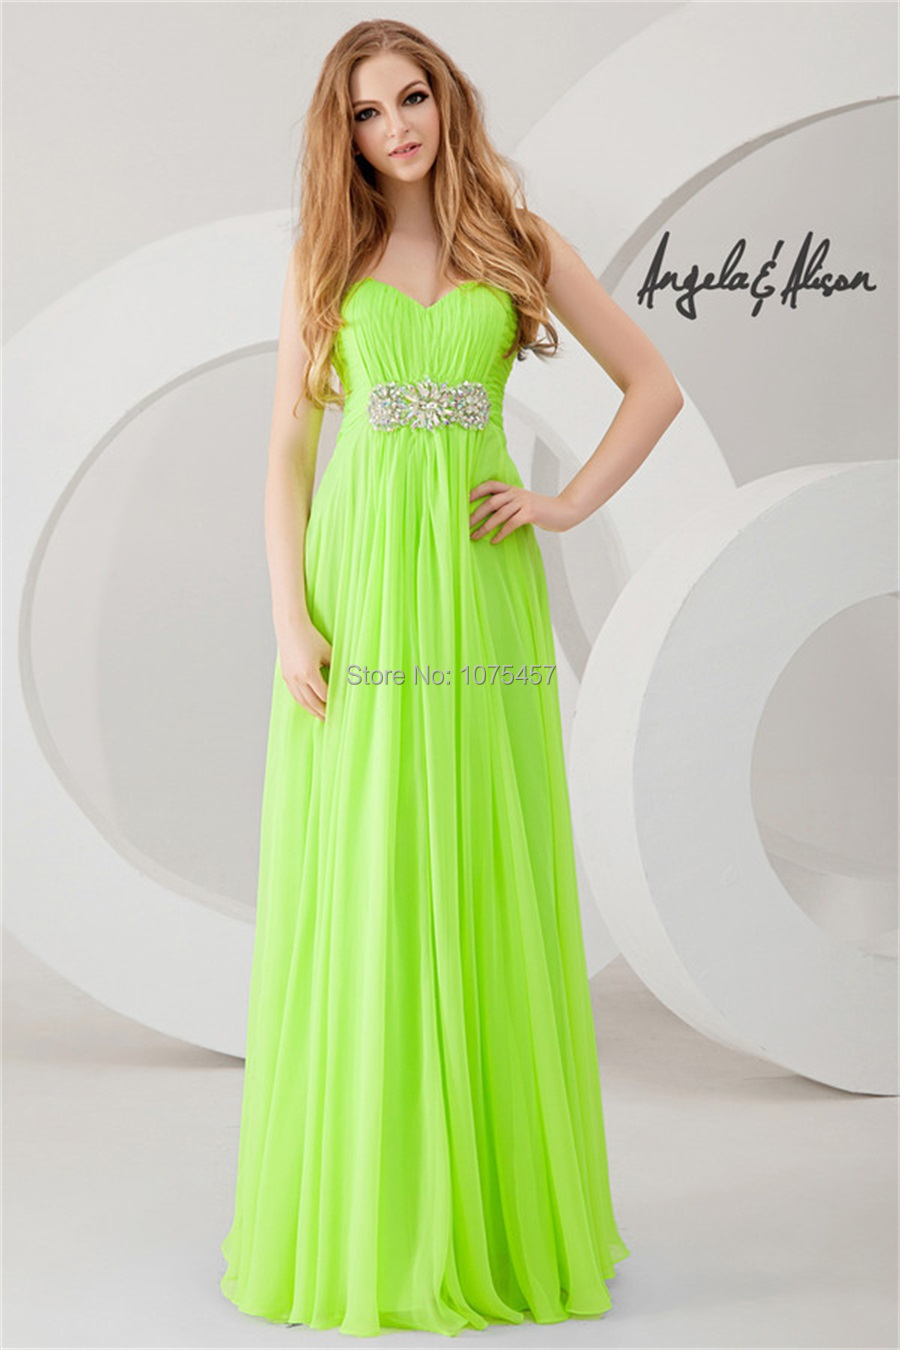 64d2691e891 Free Shipping Lime Green Prom Dresses With Crystal Beaded 2014 Sweetheart  Party Dress A Line Chiffon Long Vestido De Festa MP748-in Prom Dresses from  ...